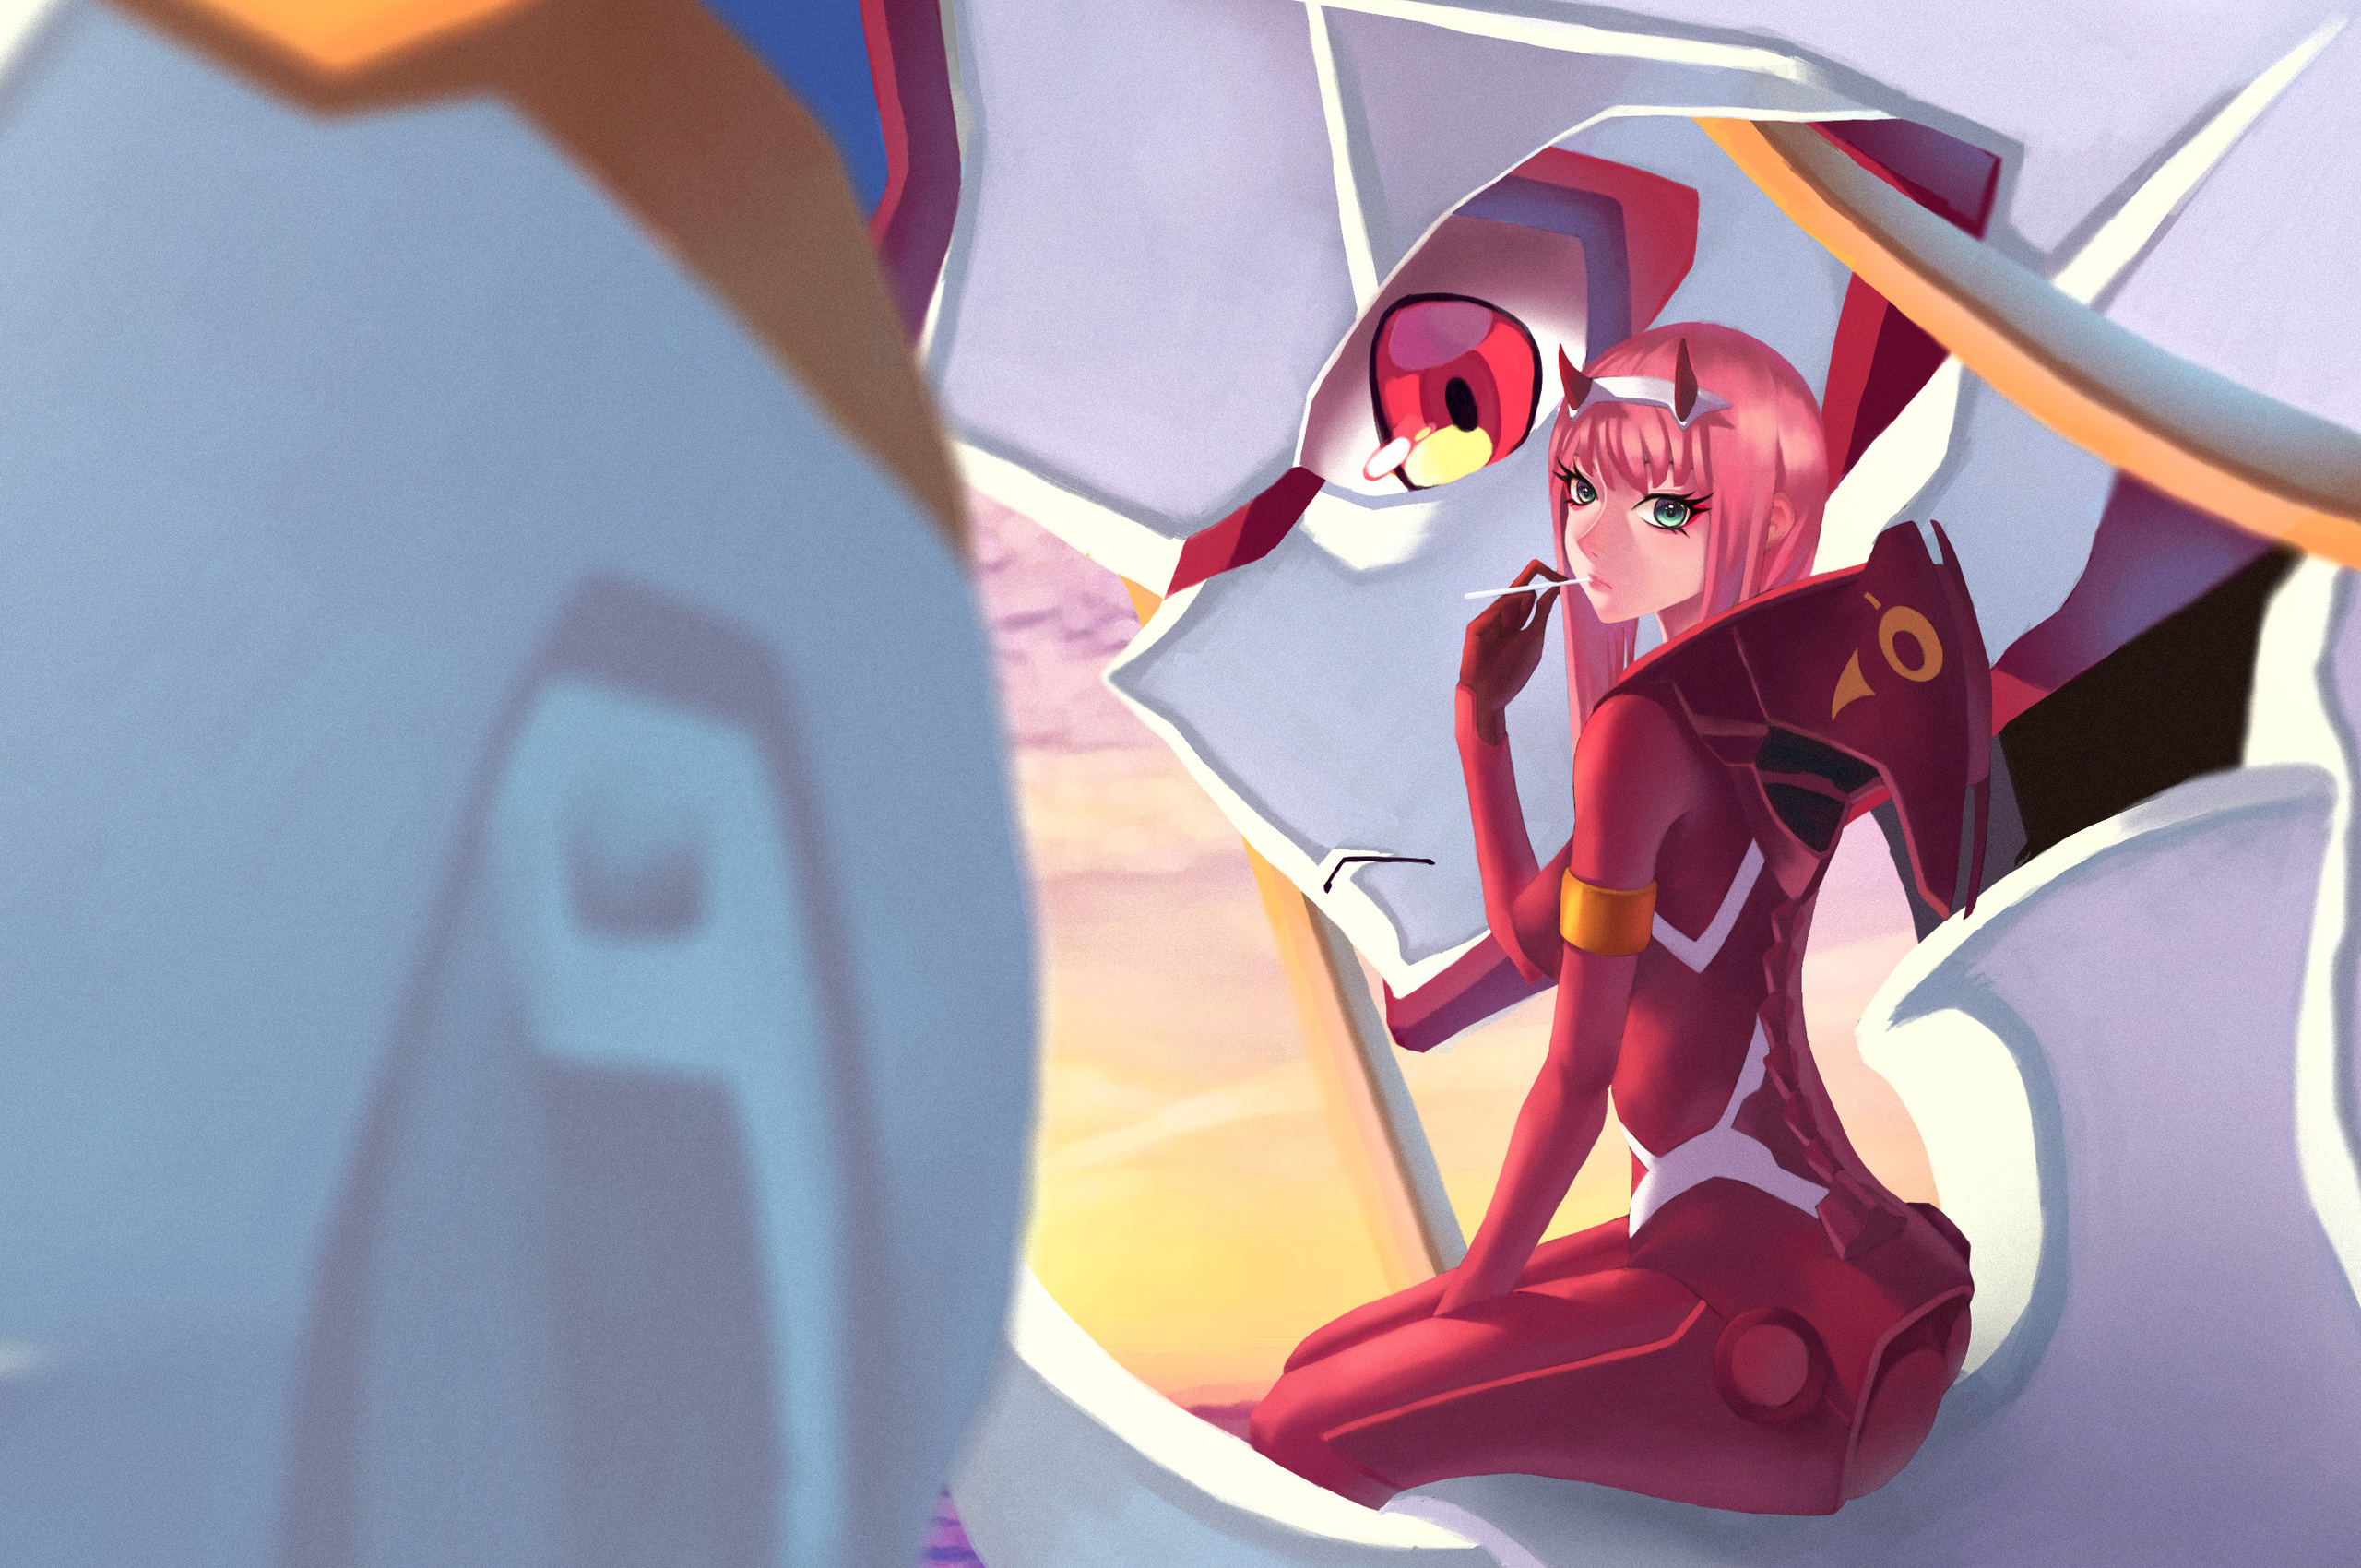 2560x1700 Anime Girl Pink Hair Zero Two Darling In The Franxx